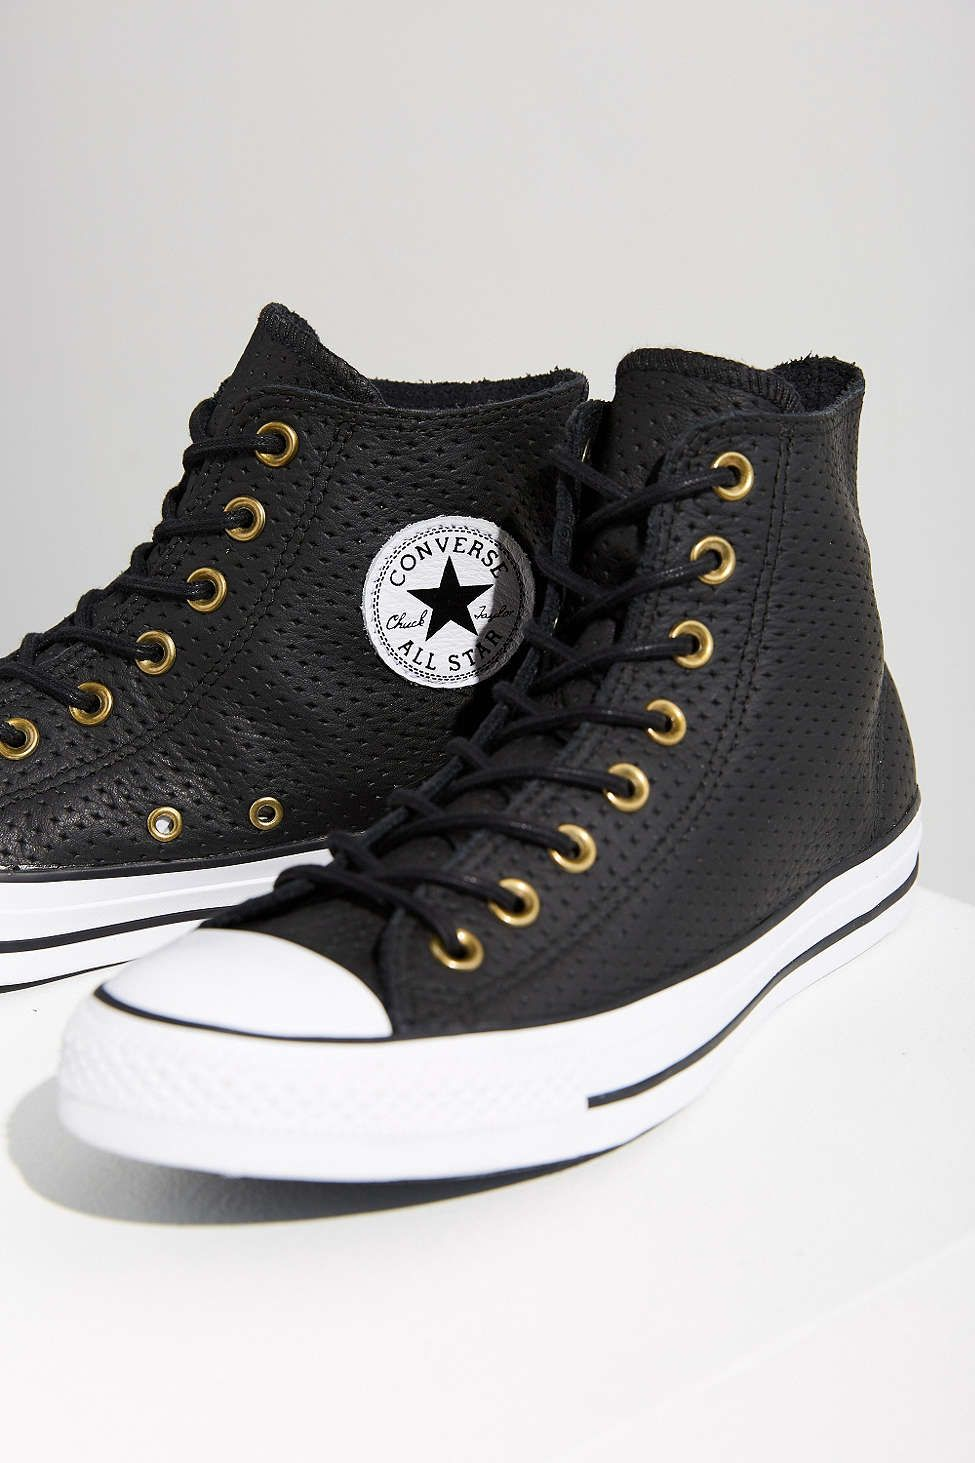 7e634db47e96 Converse Chuck Taylor Perforated Leather Sneaker http   www.95gallery.com